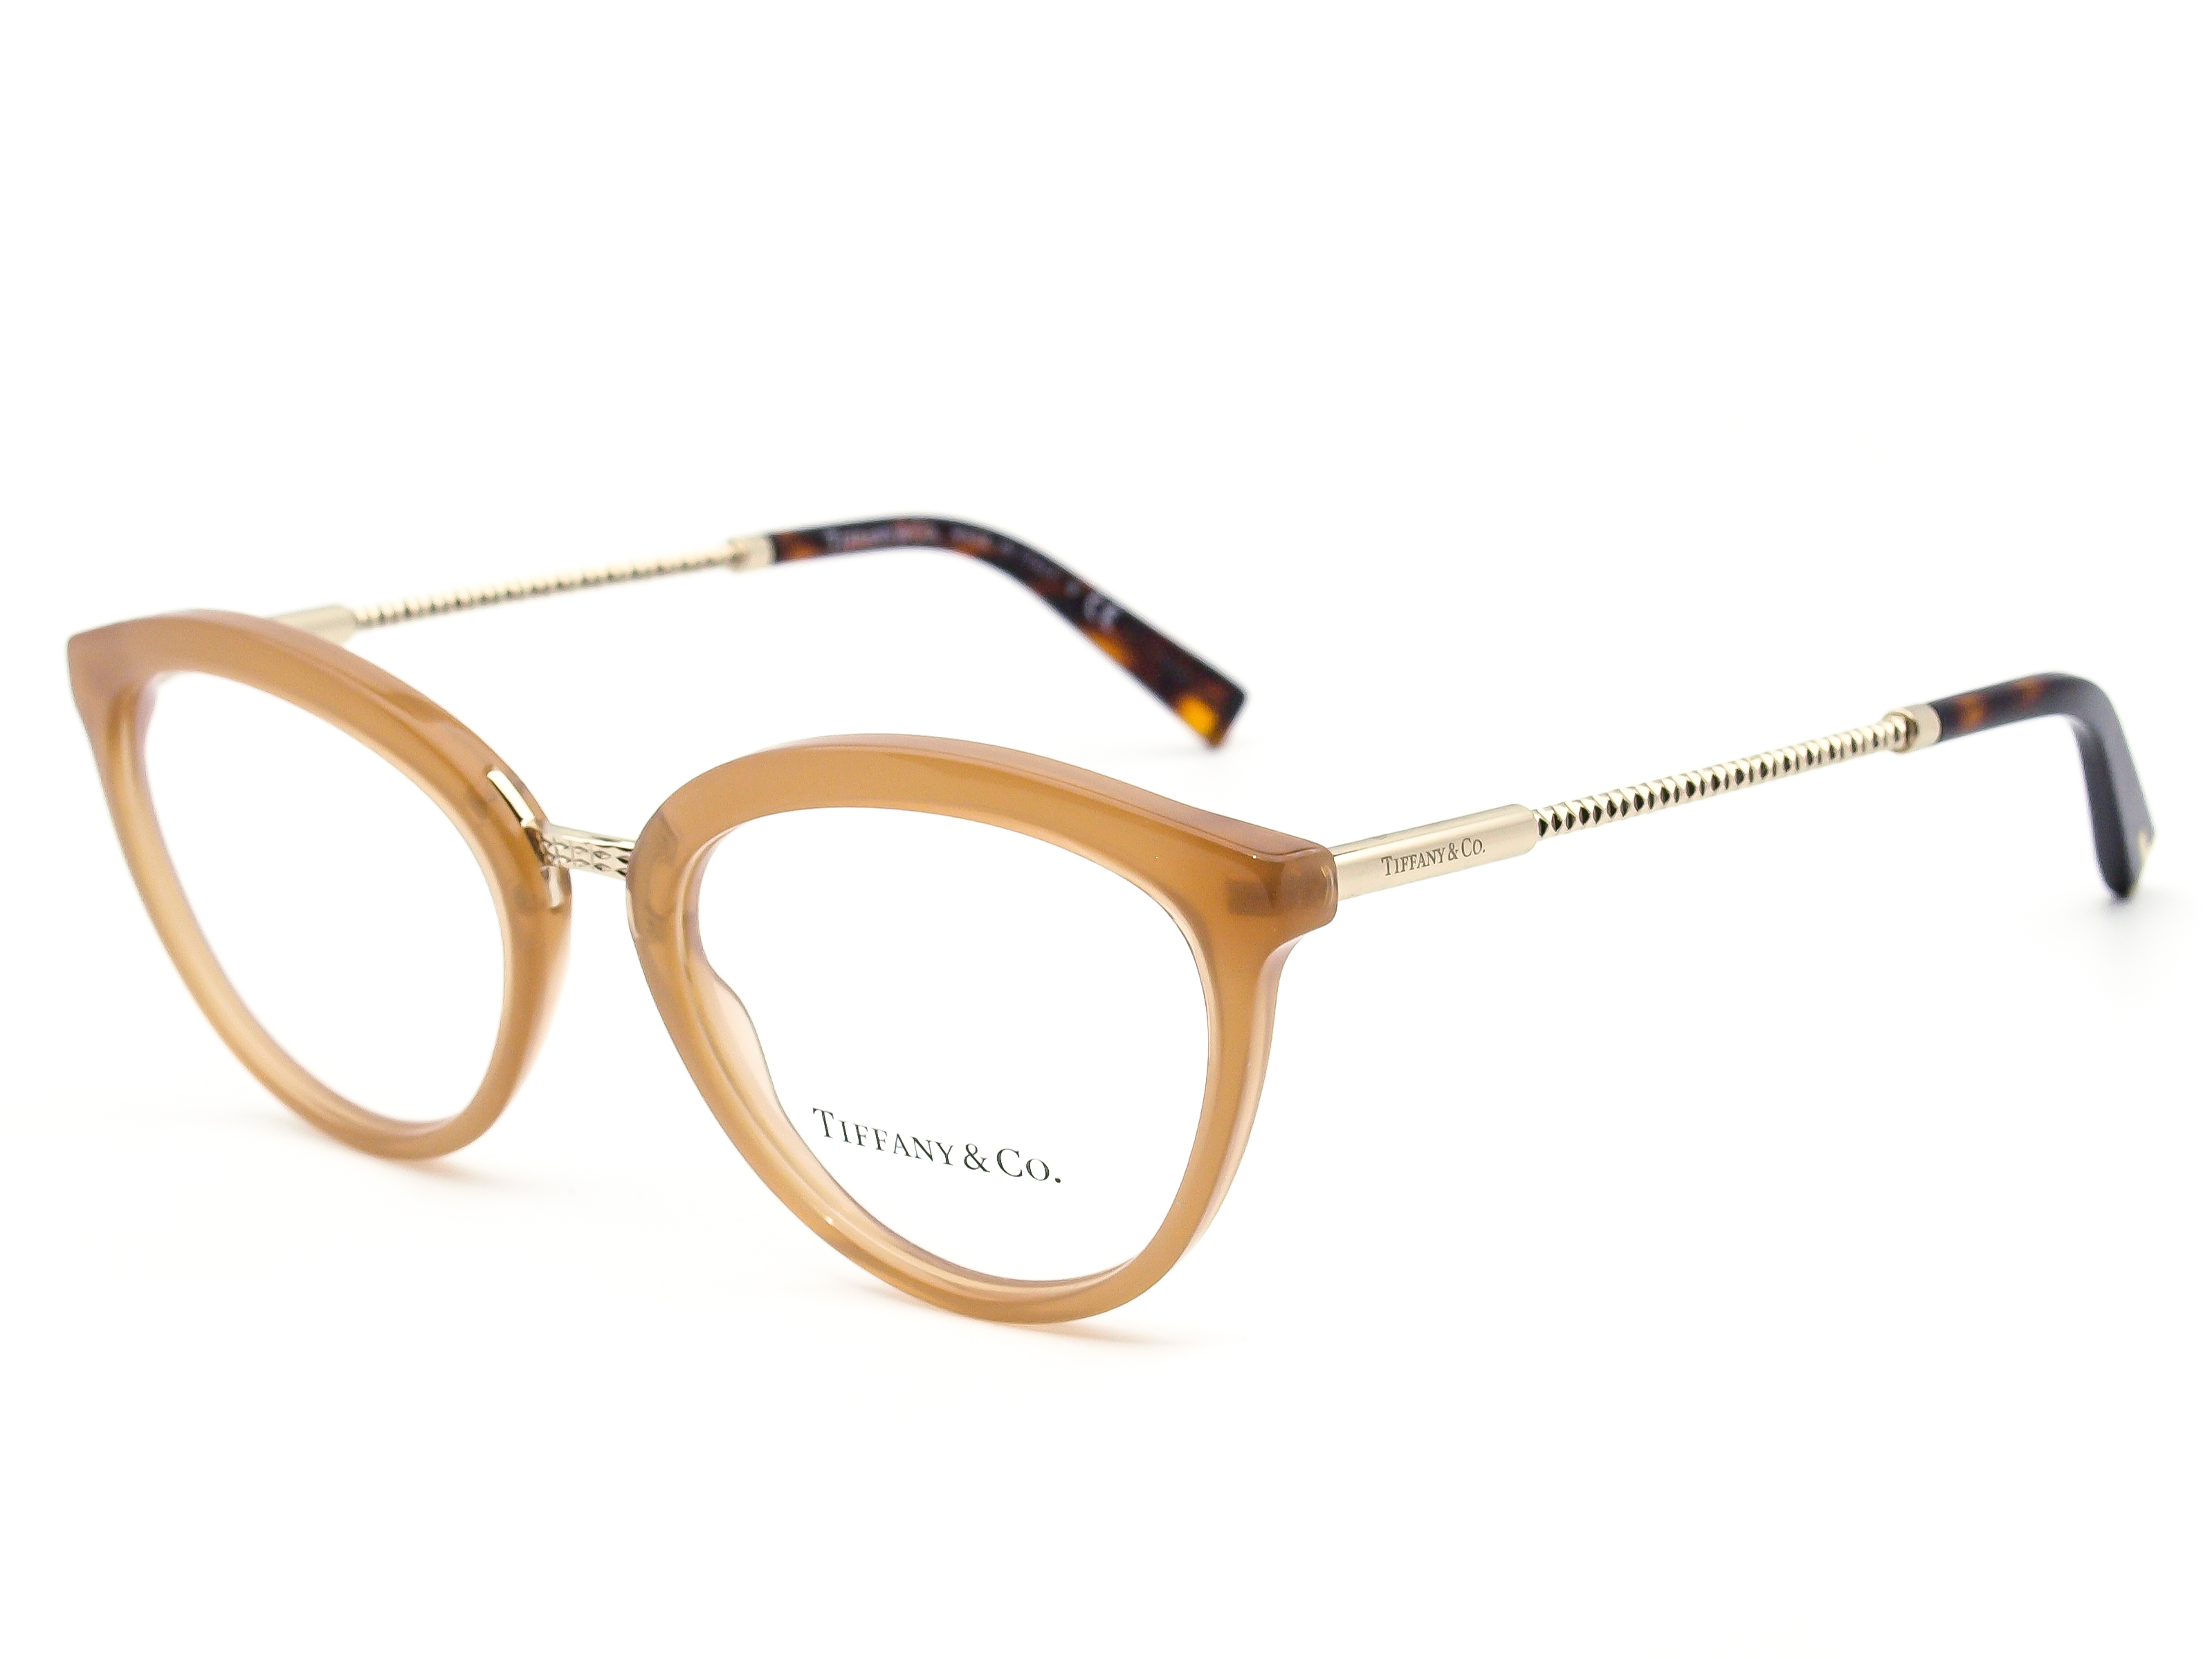 Tiffany & Co. TF 2173 8252 Eyeglasses